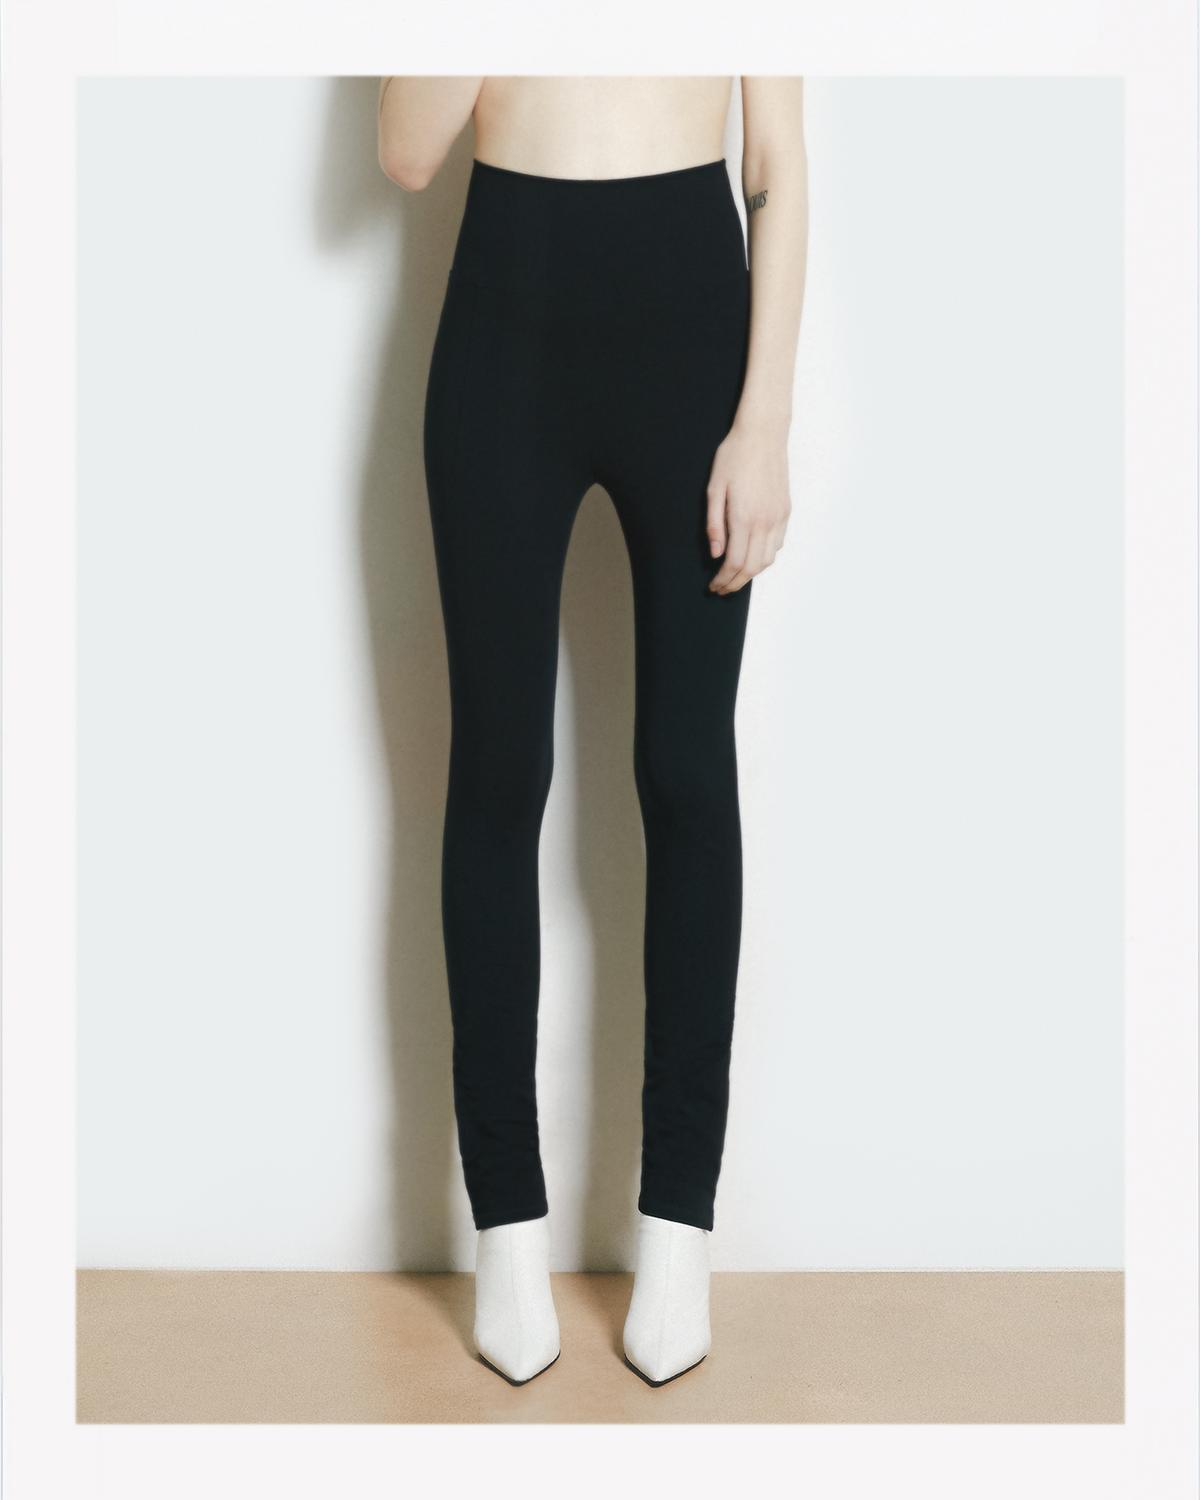 REFLEX ZIP LEGGING